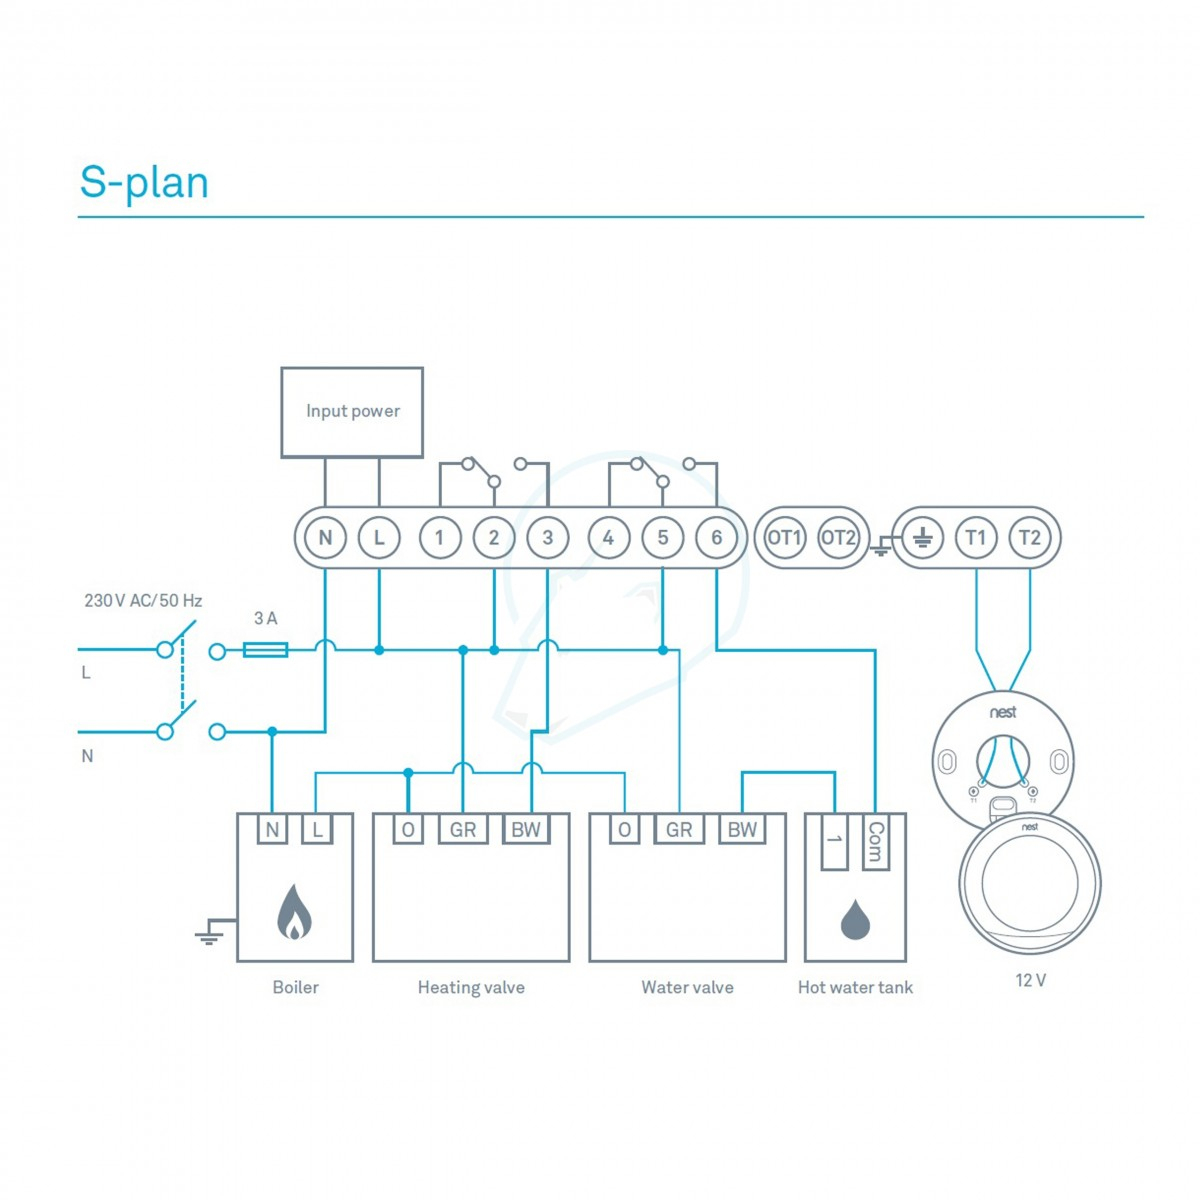 Nest 3Rd Generation Wiring Diagram Uk - Simple Wiring Diagram - 3Rd Generation Nest Wiring Diagram